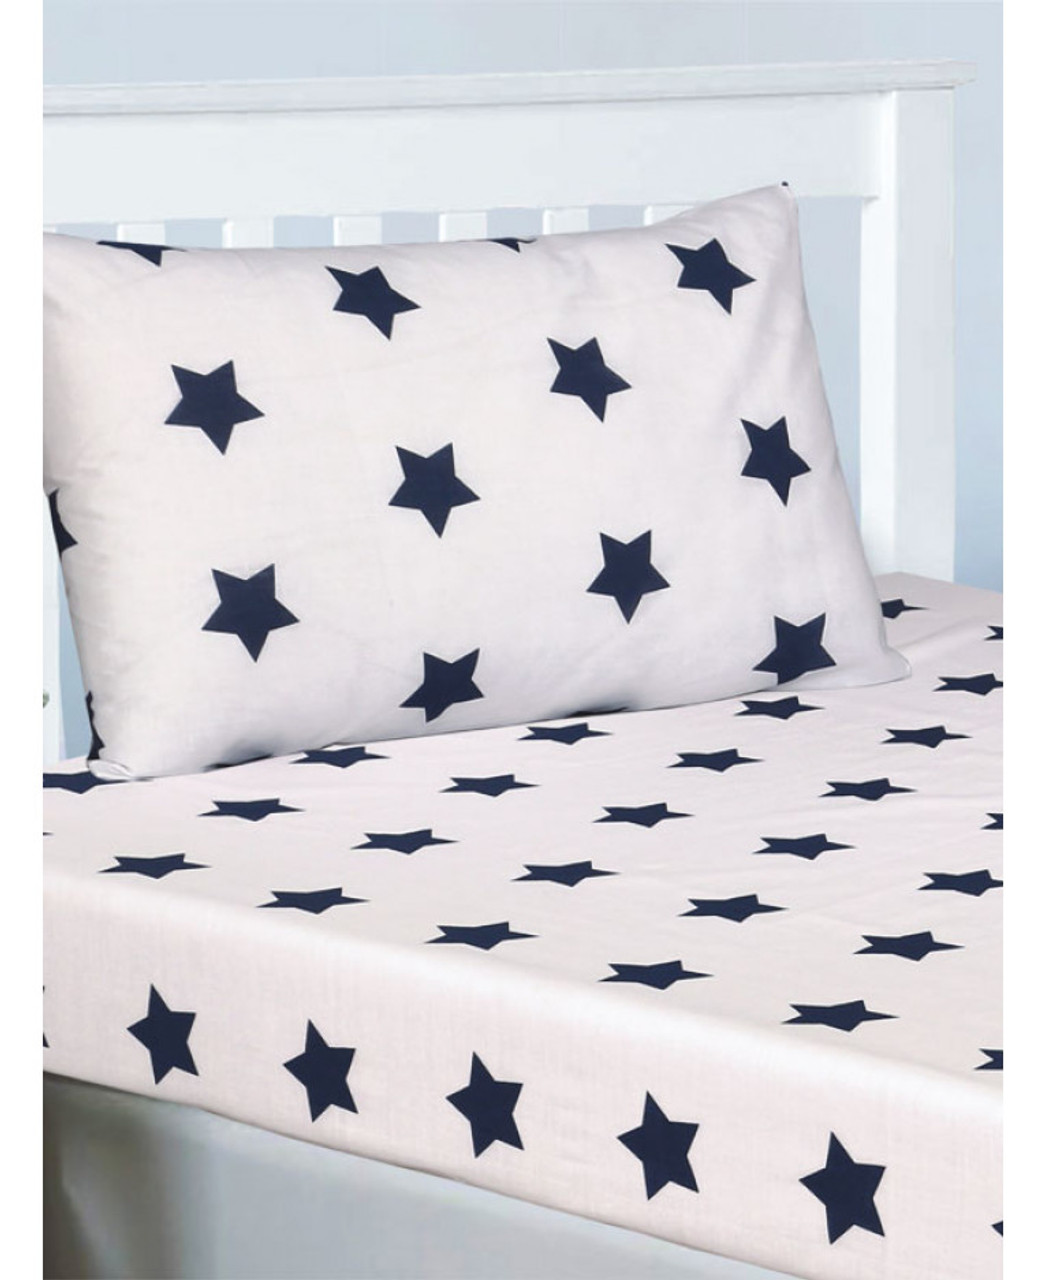 COLOURFUL STARS SINGLE FITTED SHEET /& PILLOWCASE SET BEDDING GIRLS